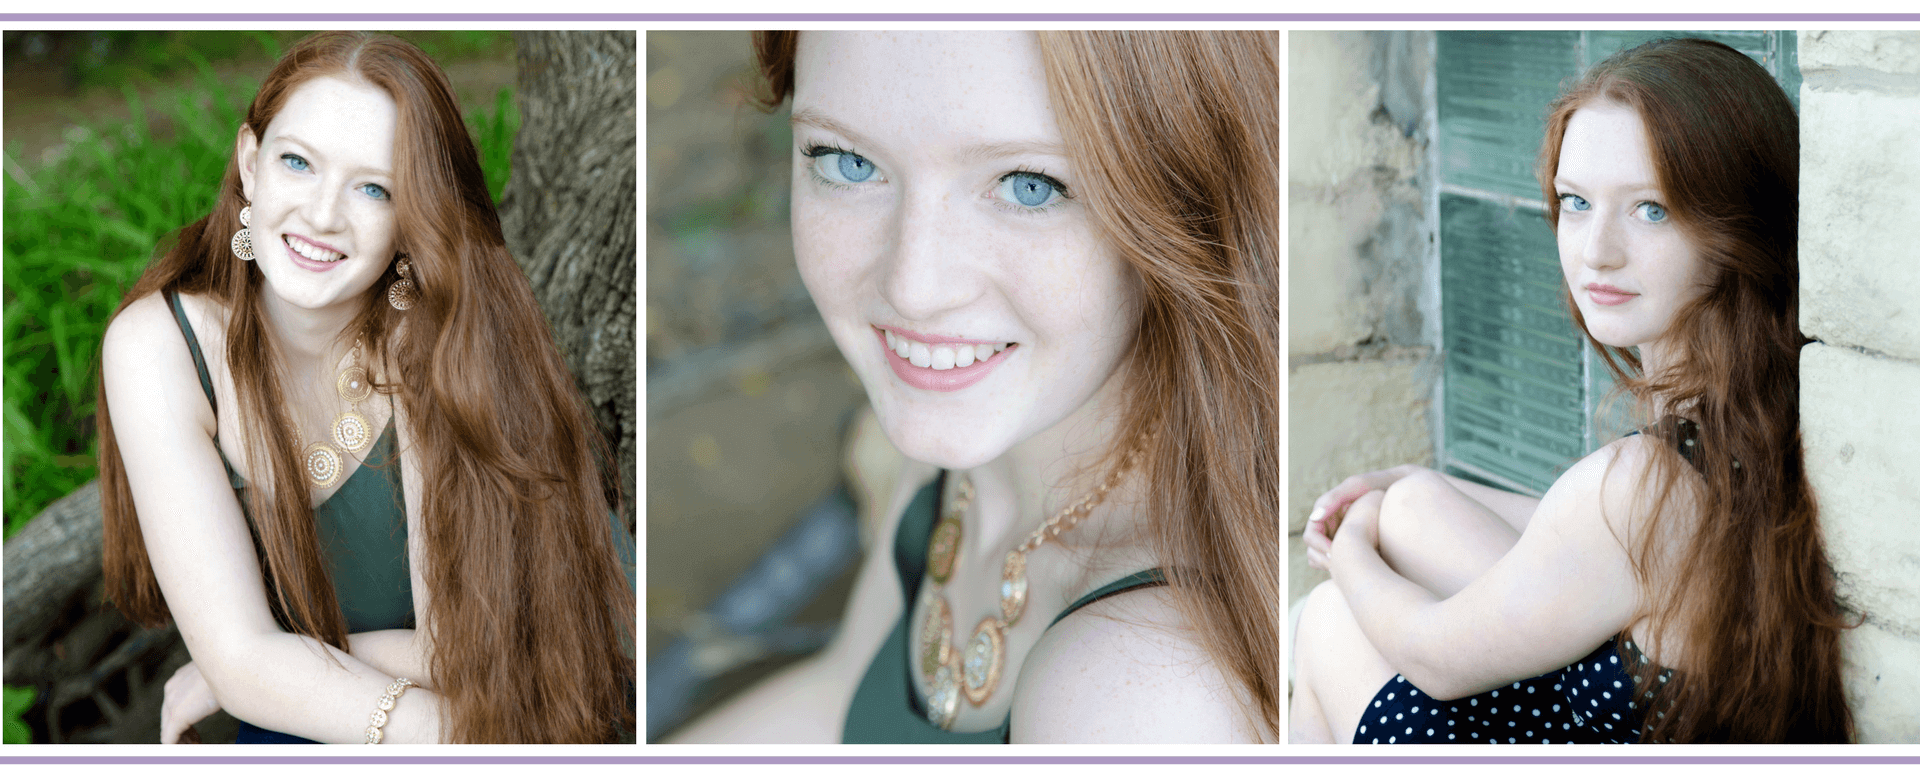 Woodbury MN Photographer | Professional Sr. Portraits | Focus Photography by Susan